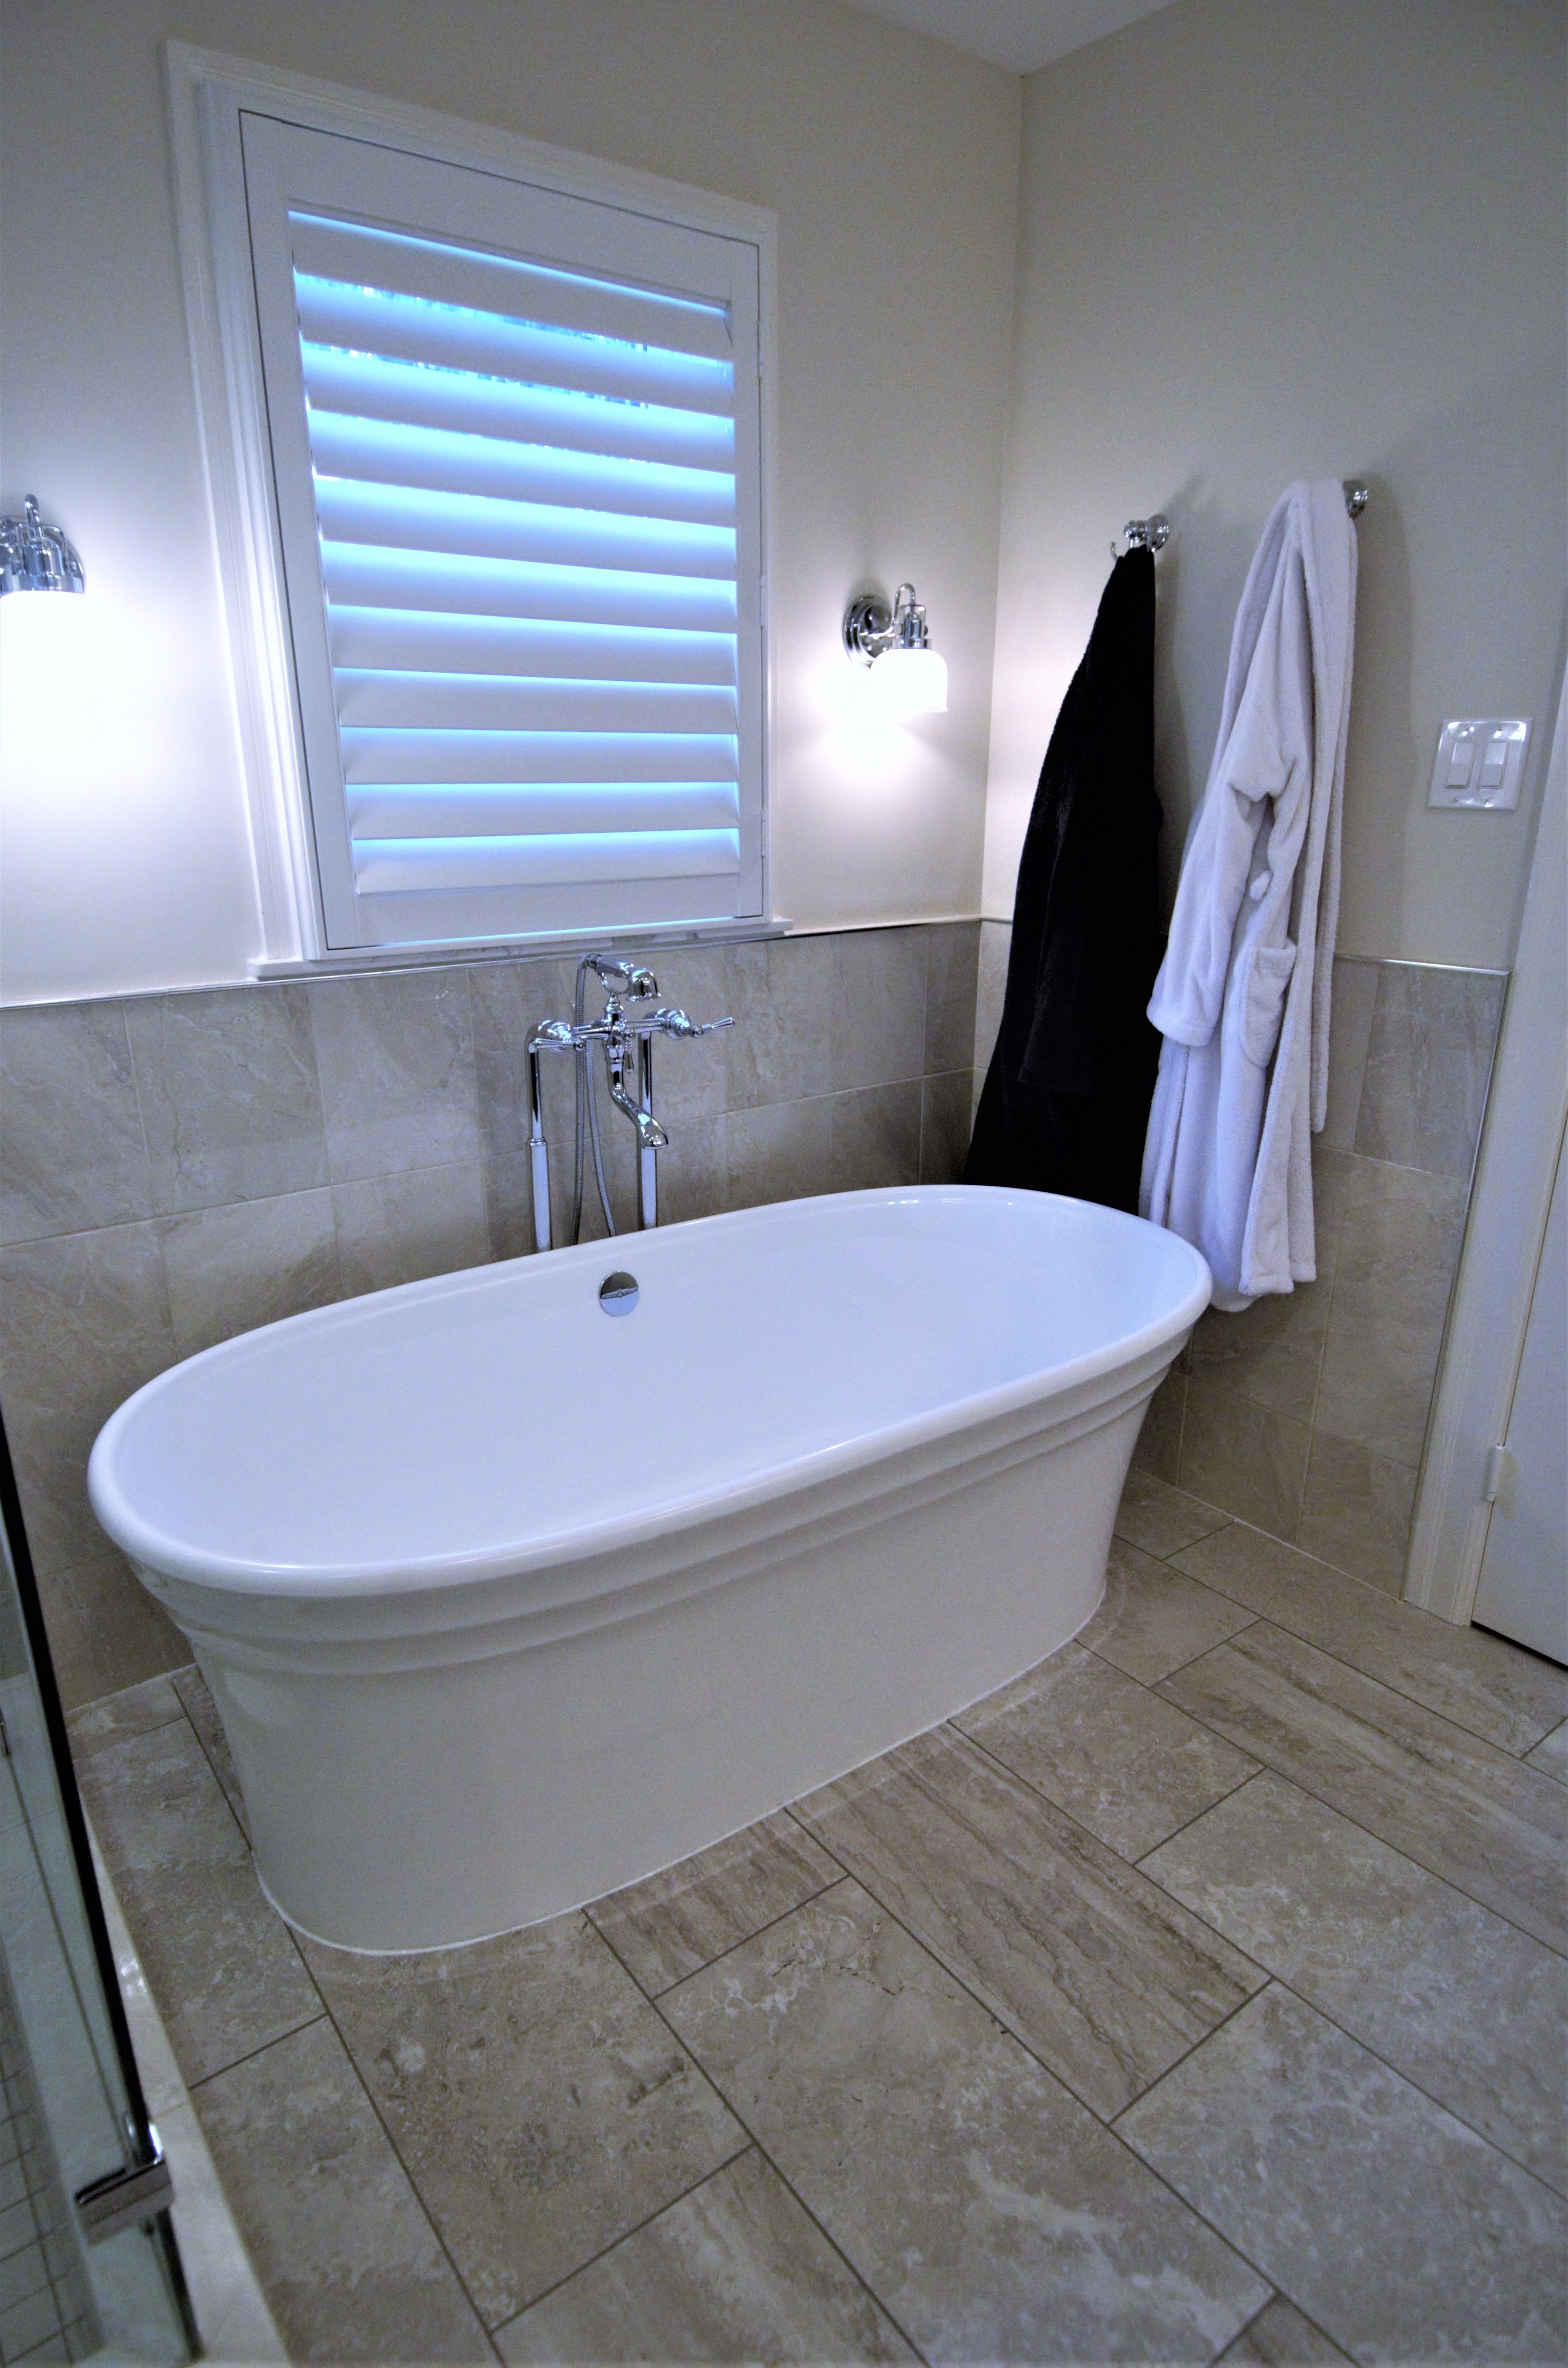 Luxury is known by soaker tubs like this, with a high overflow and ...